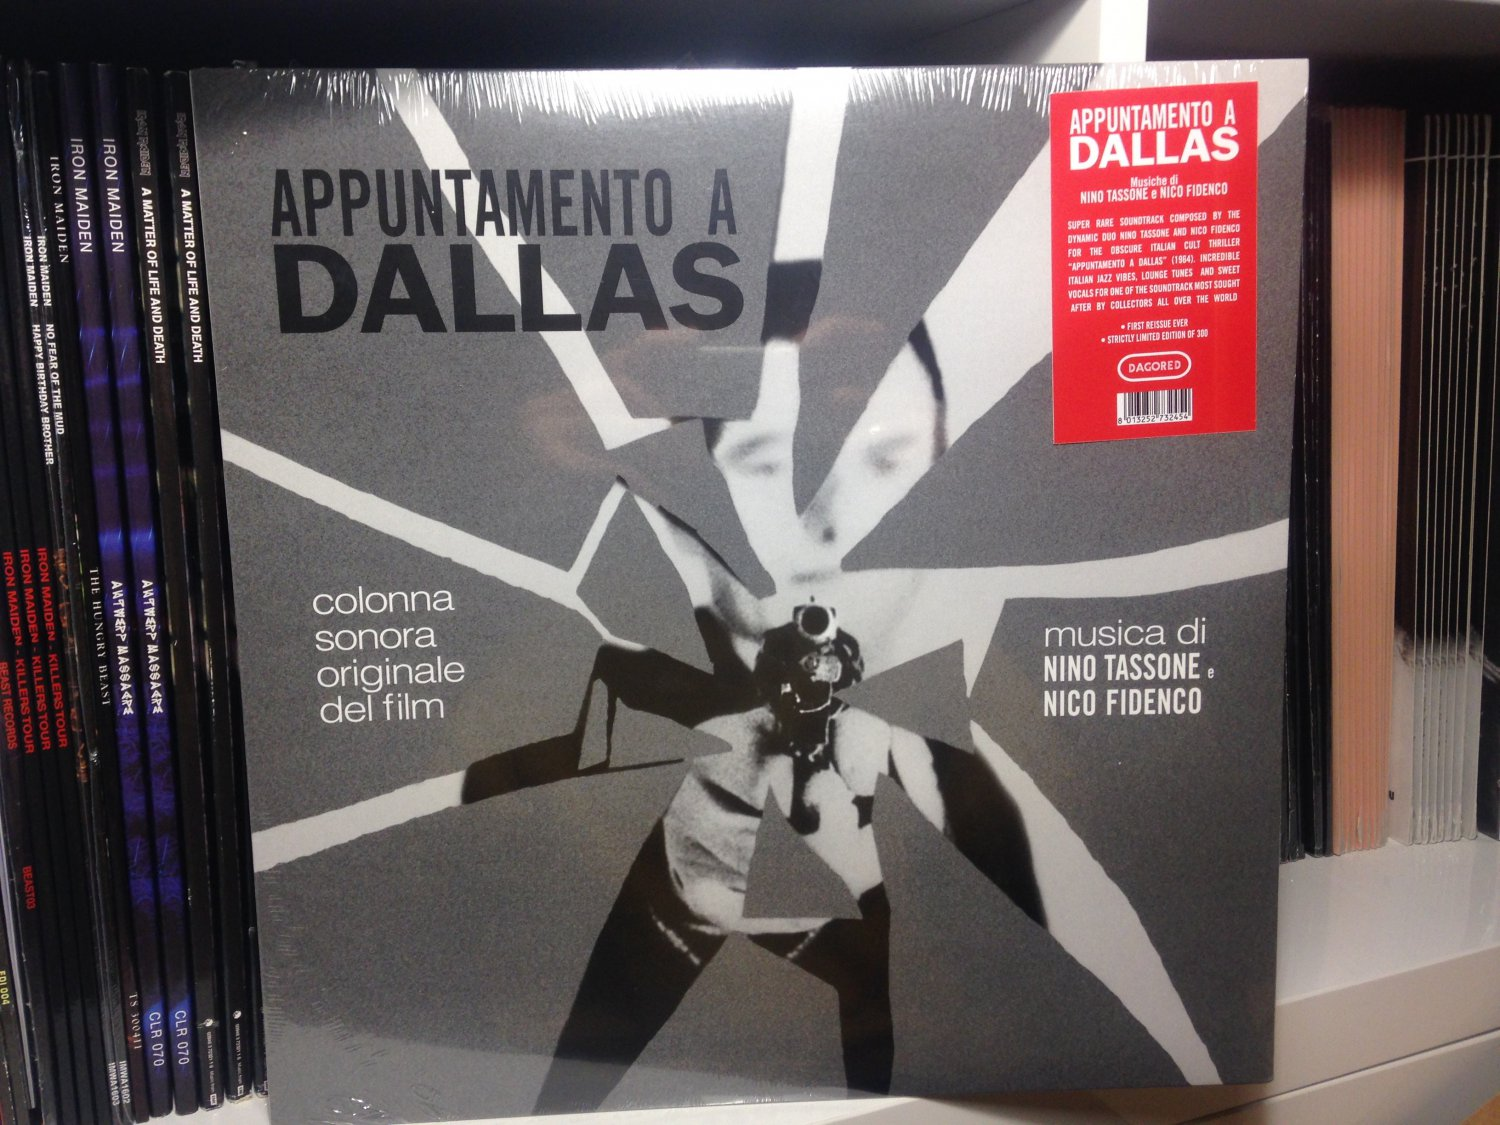 NINO TASSONE E NICO FIDENCO LP appuntamento a dallas soundtrack